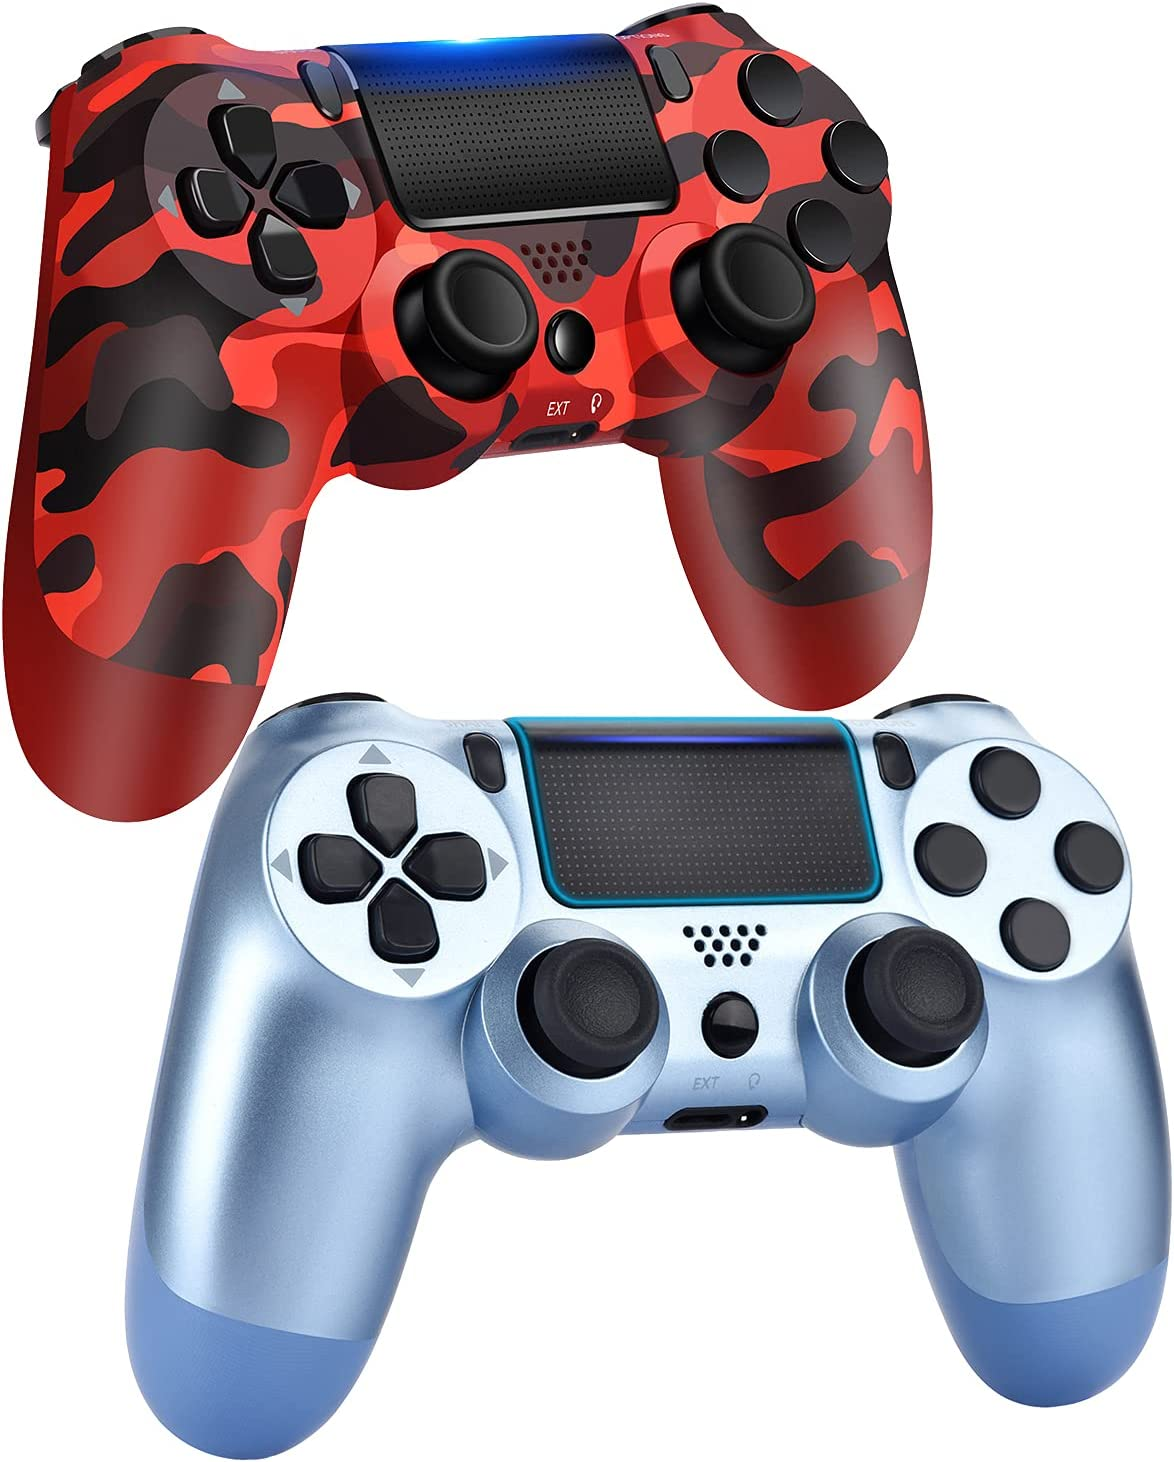 AUGEX 2 Pack Game Controllers for P-4,Wireless Controller Compatible with P-4 Console;AUGEX Remote Control with Dual Vibration Game Joystick (Blue Red)